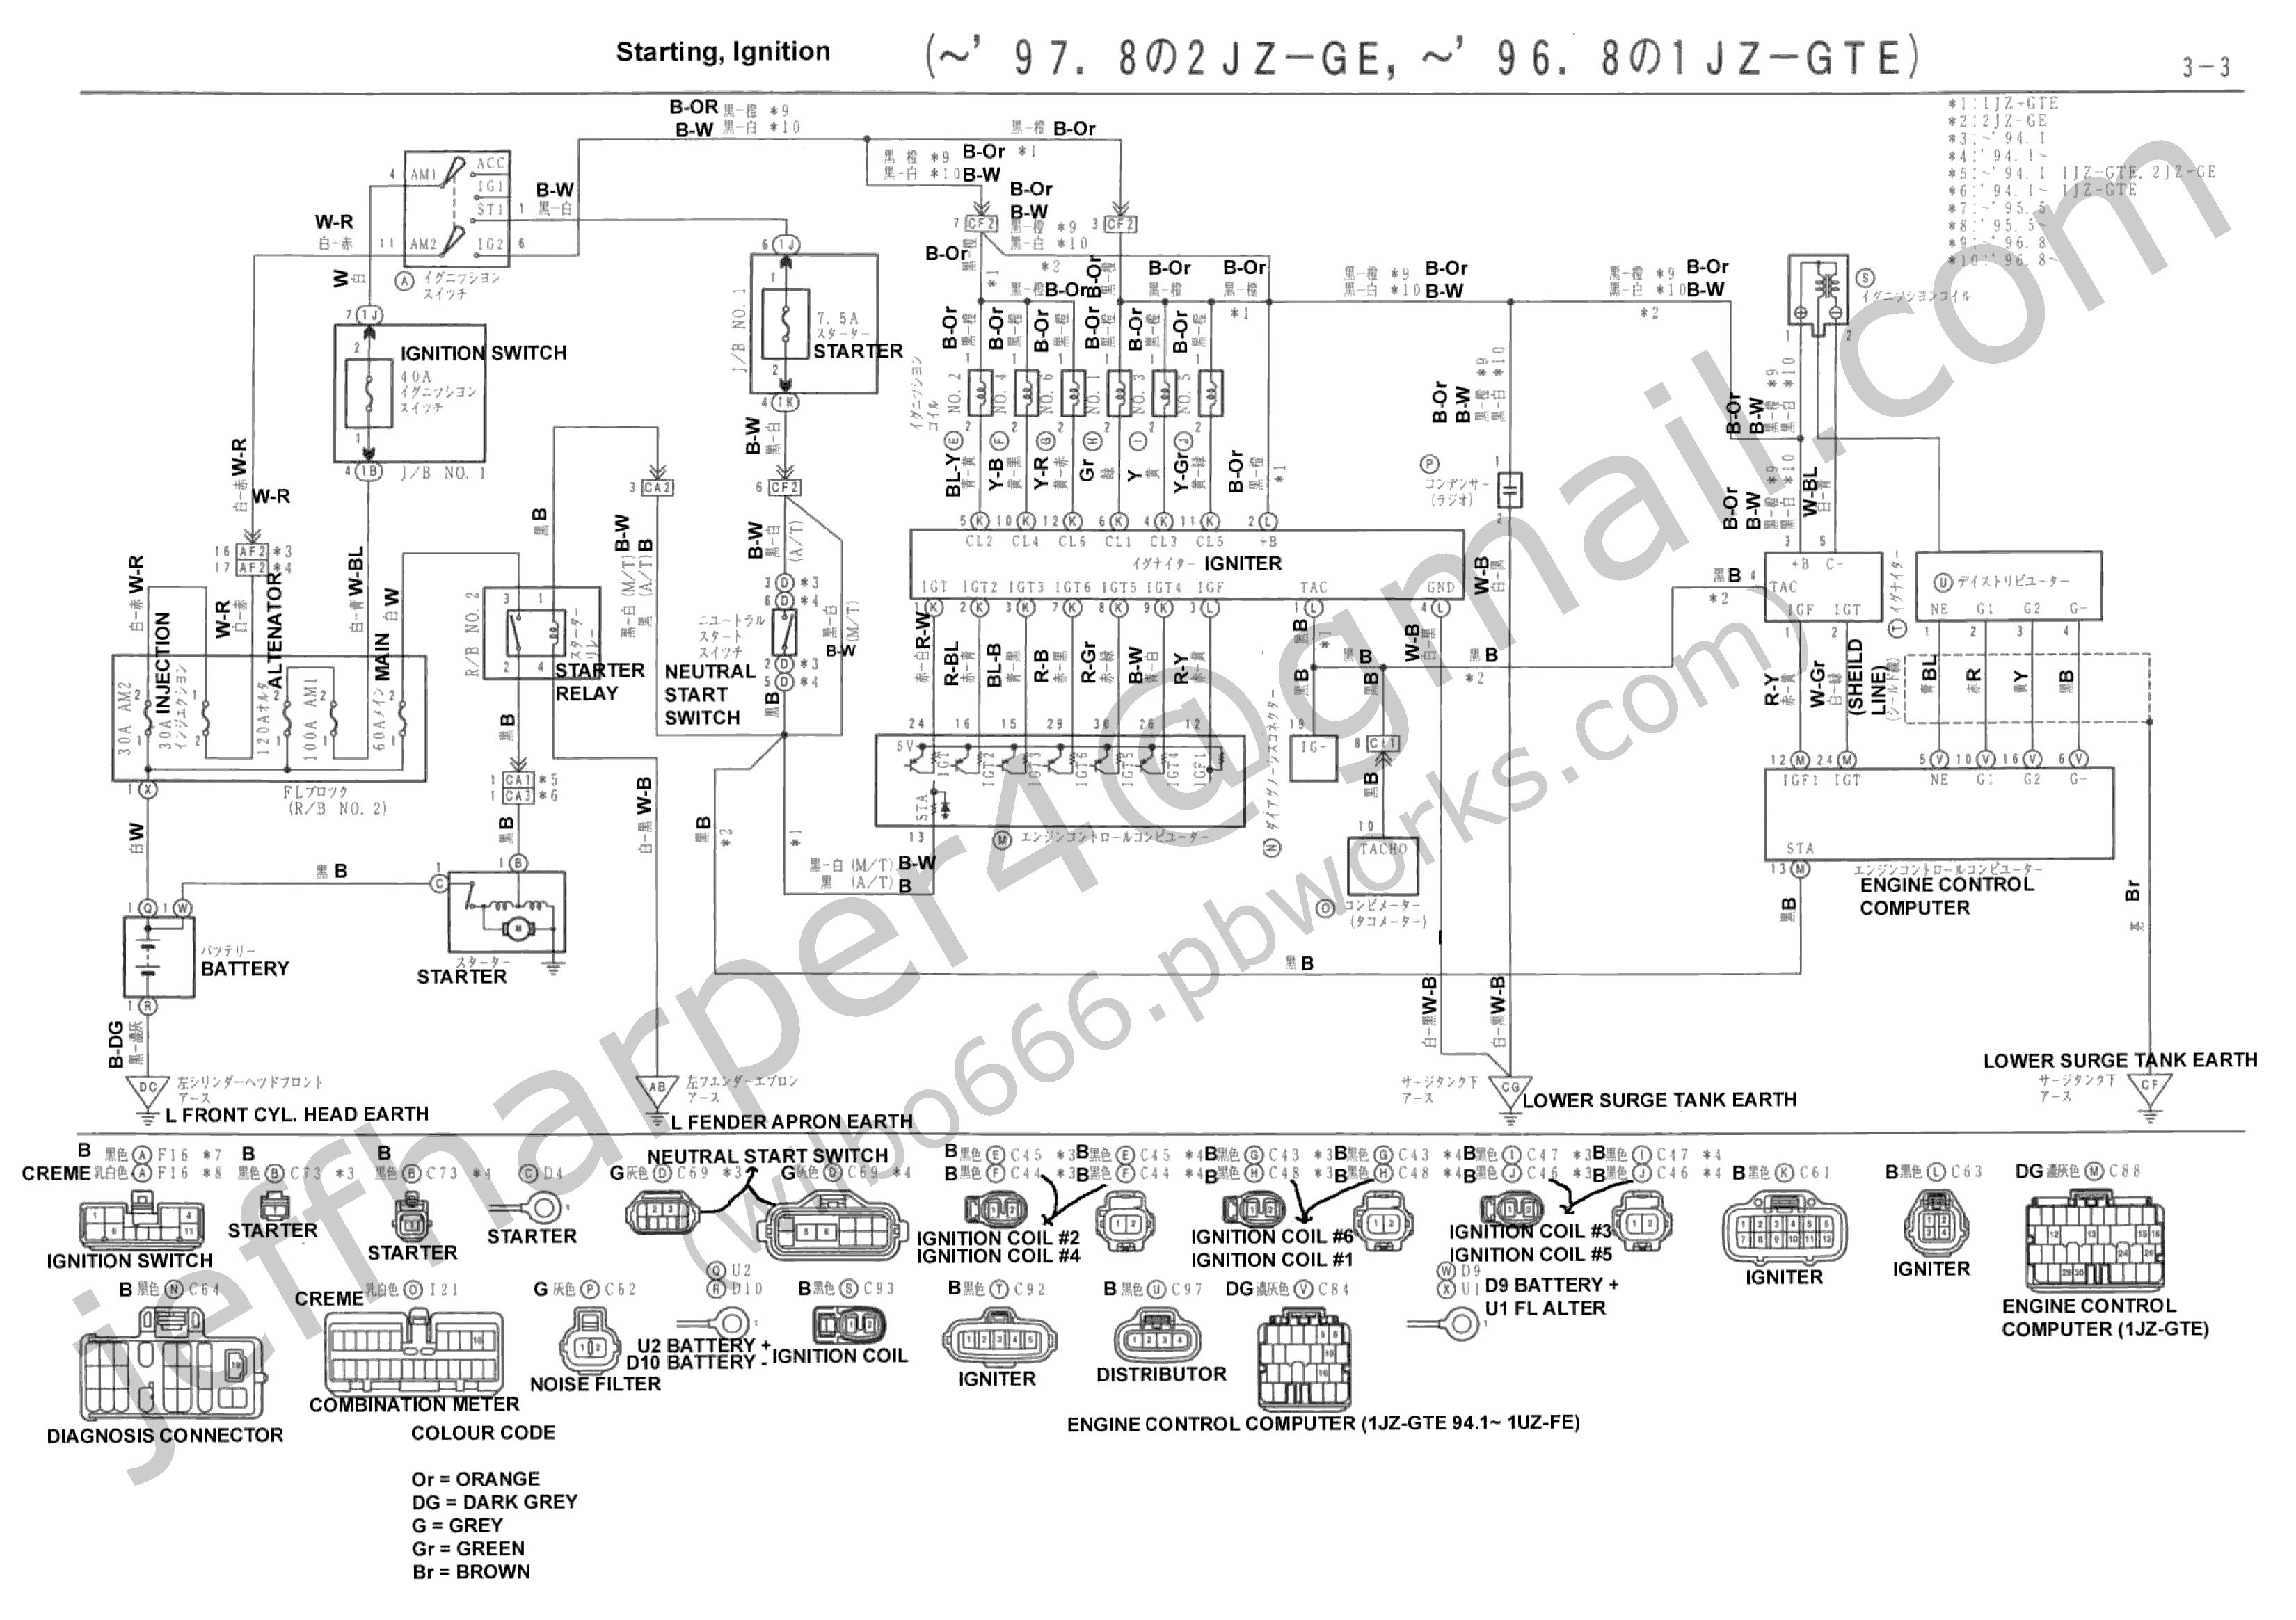 1jz vvti wiring diagram